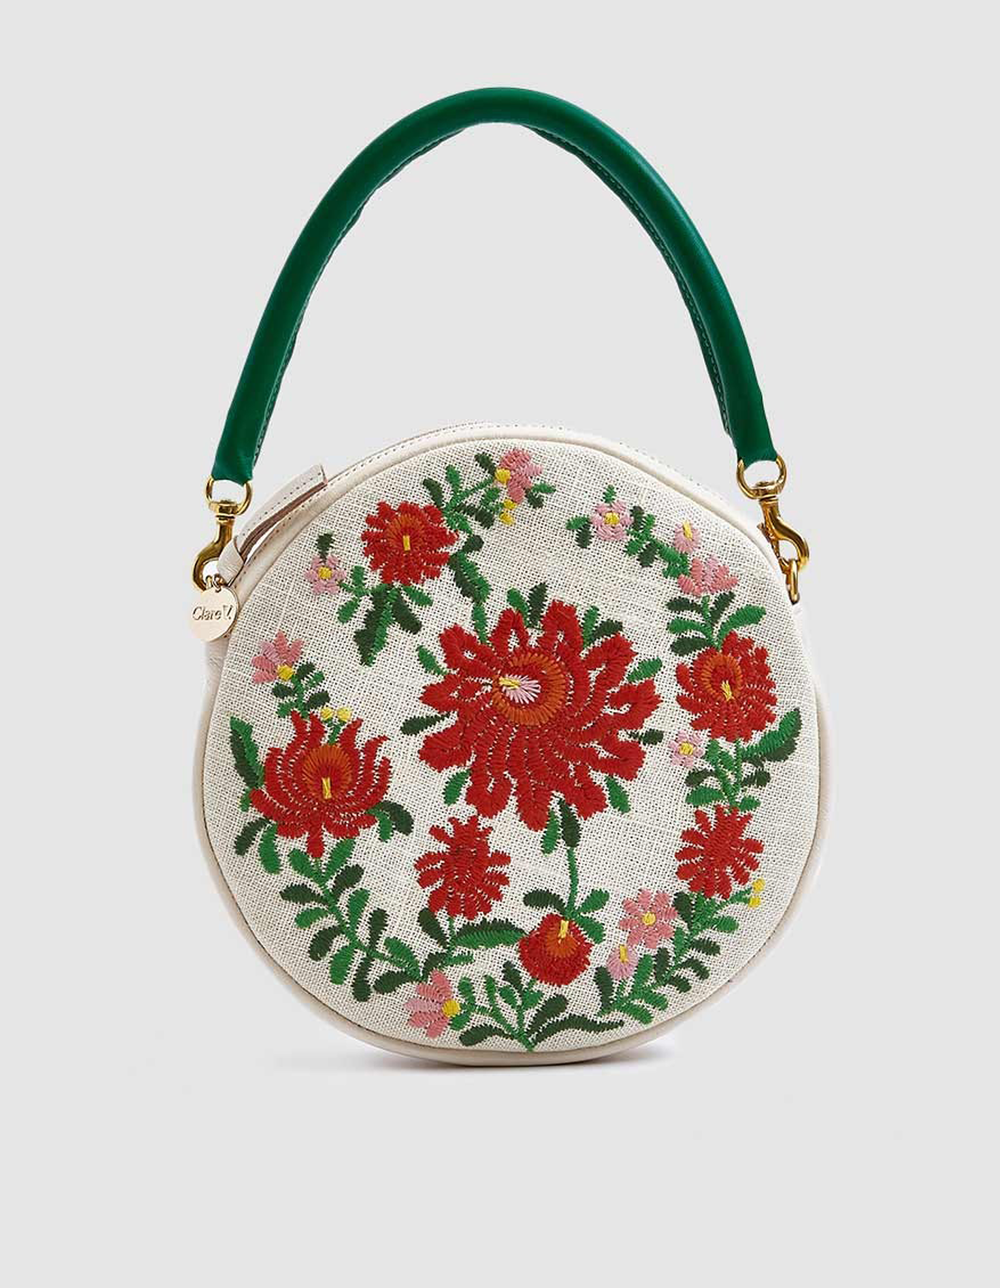 7-claire-v-embroidered-circle-bag.png